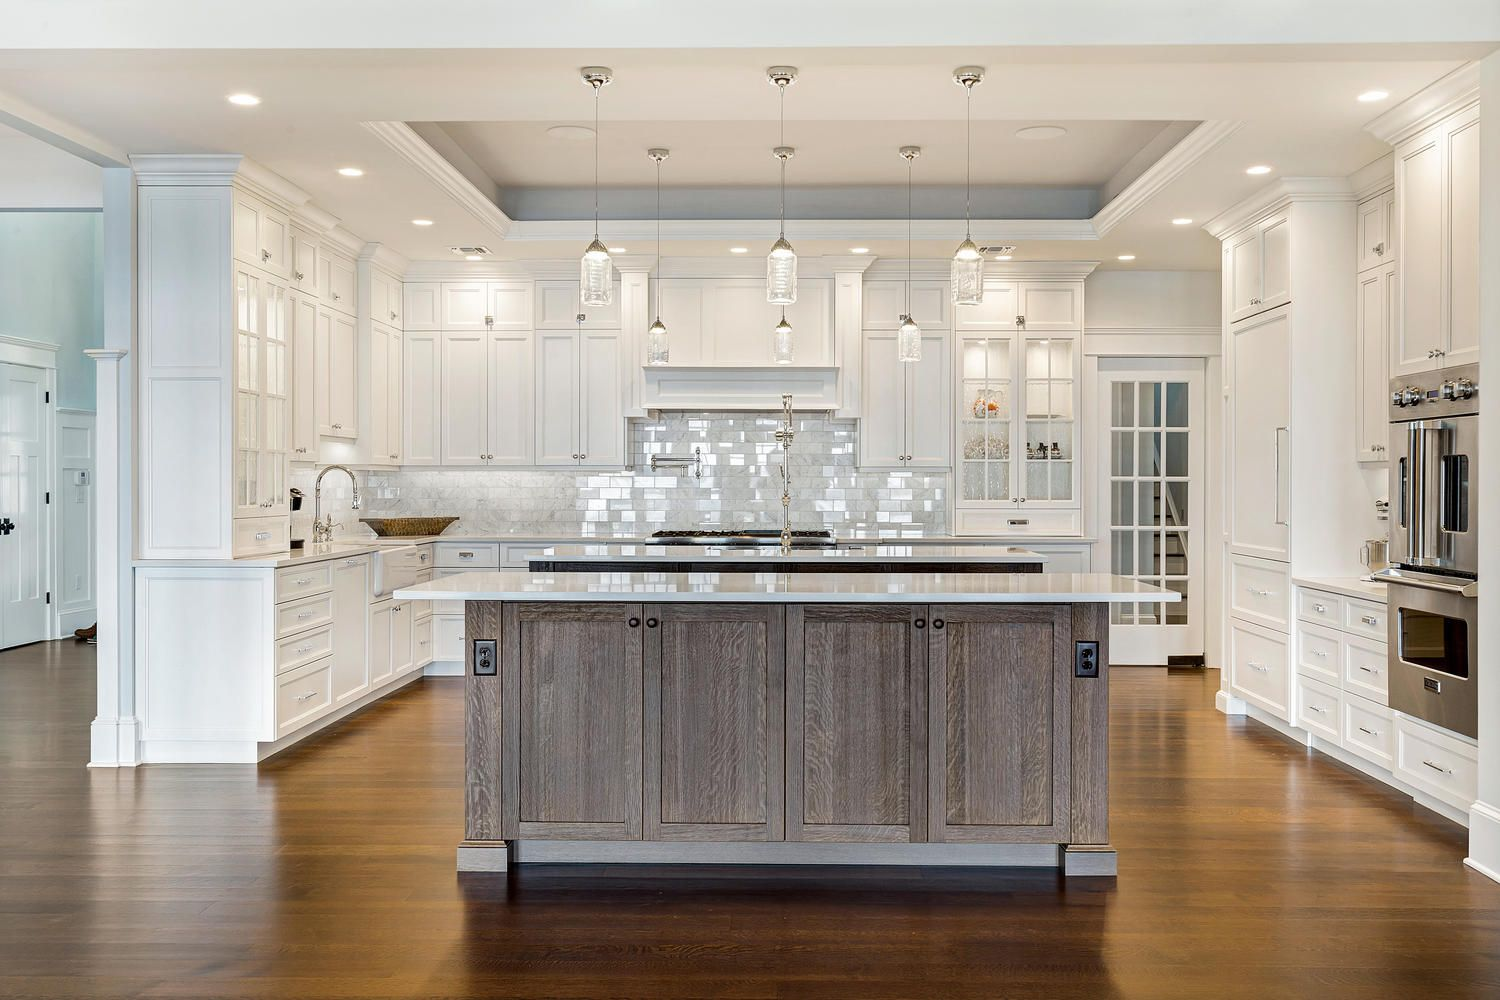 30 Beautiful Ideas To Design Your Own Dream Kitchen  Kitchen Cool Kitchen Design Your Own Decorating Inspiration